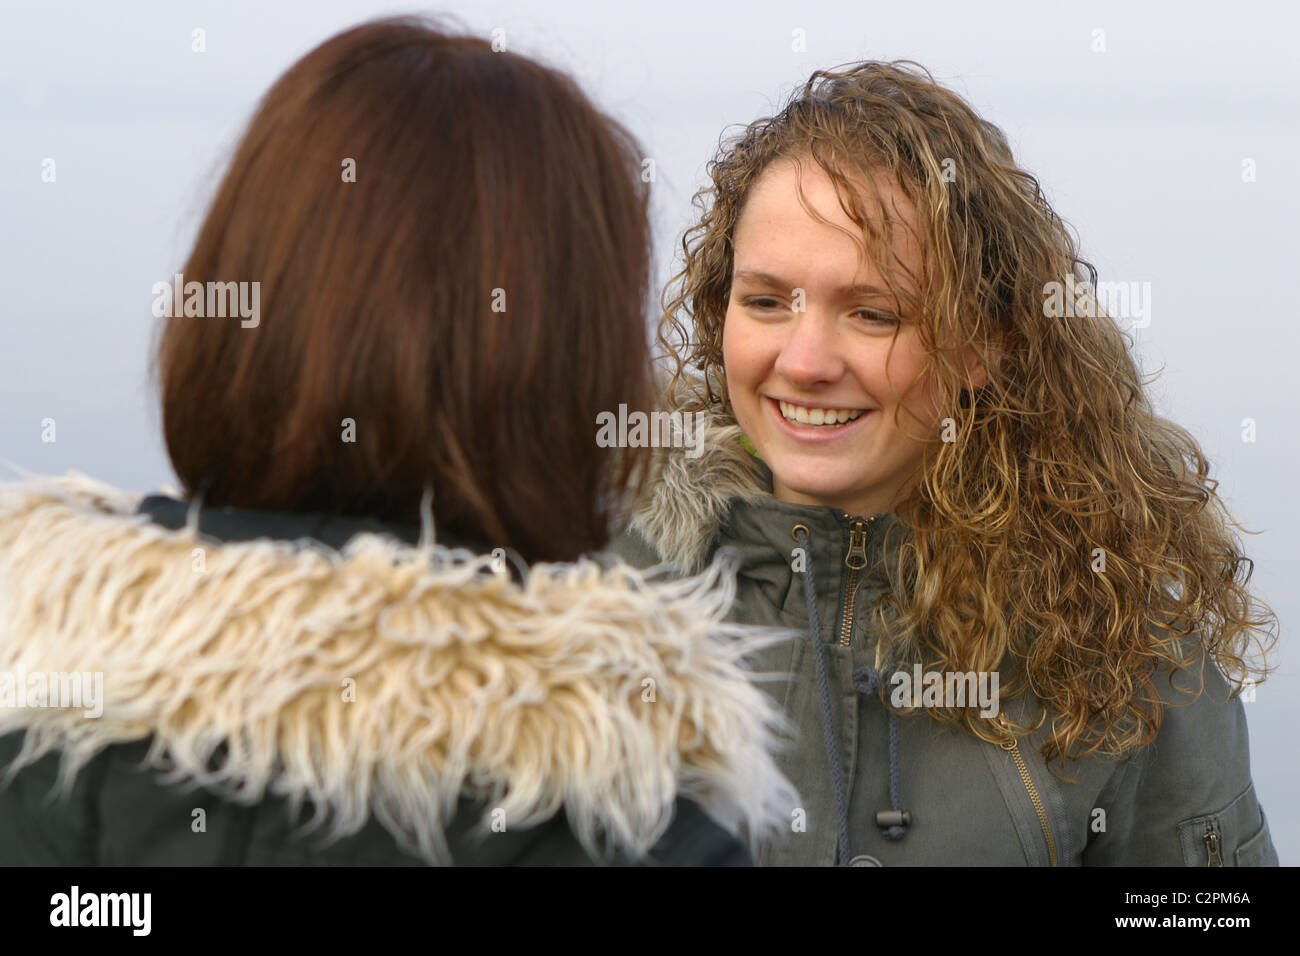 Two young women chatting outside in winter coats - Stock Image